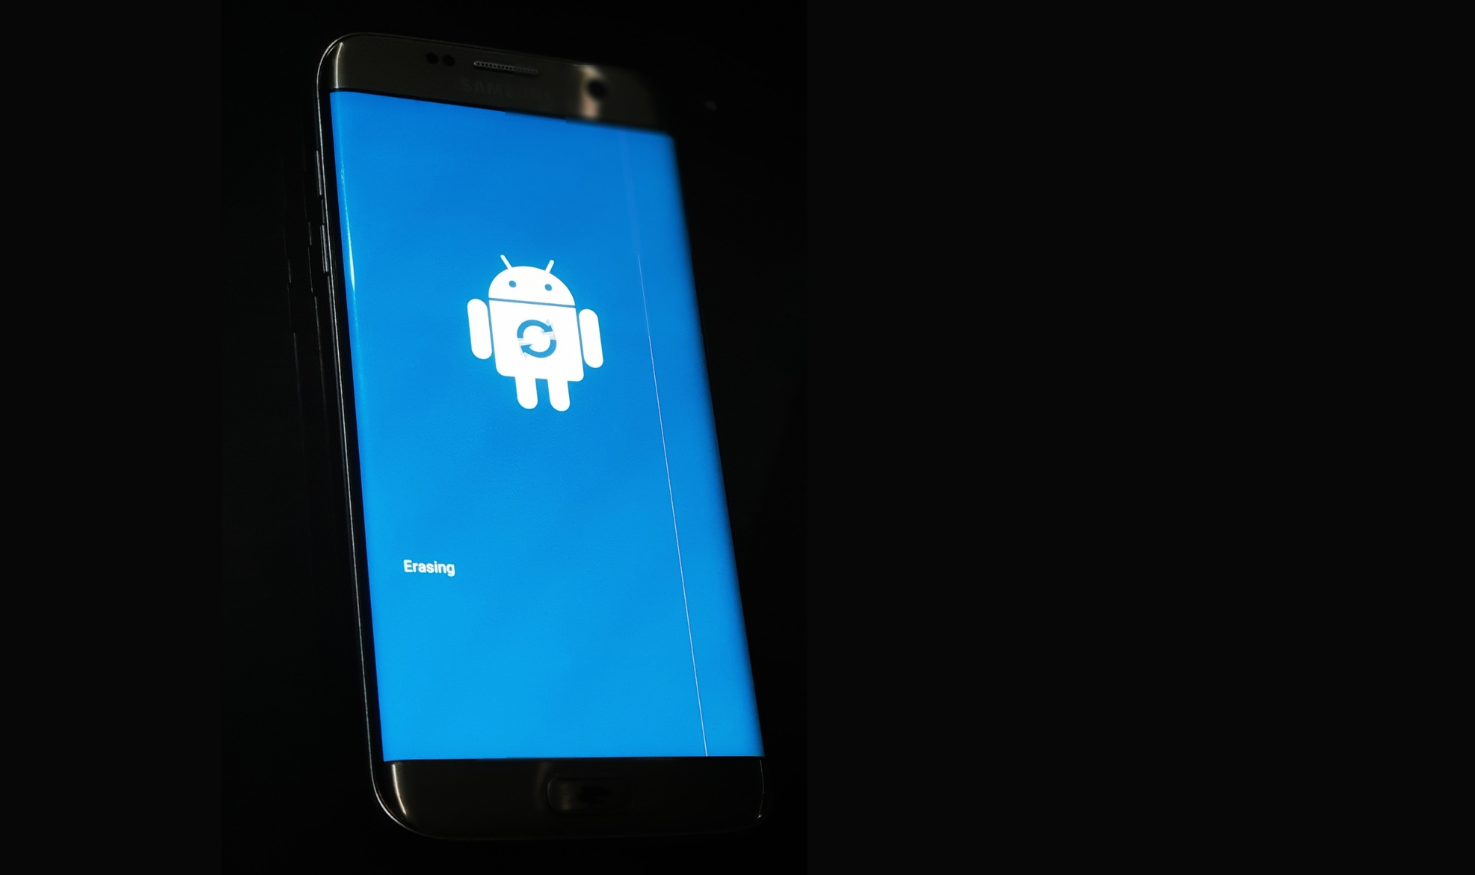 Factory resetting a Samsung Knox mobile device